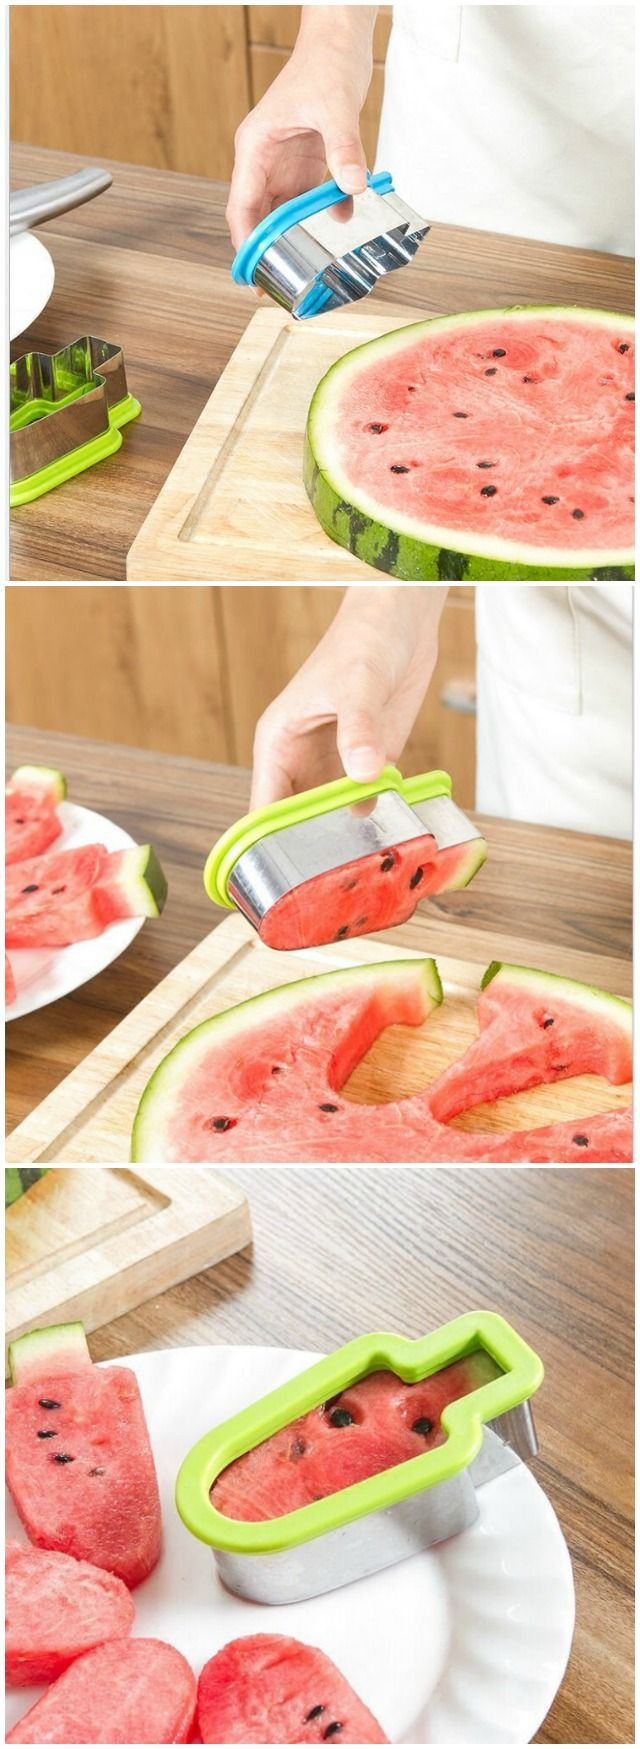 The innovative tool to cut and serve the watermelon in a quick and clean way.